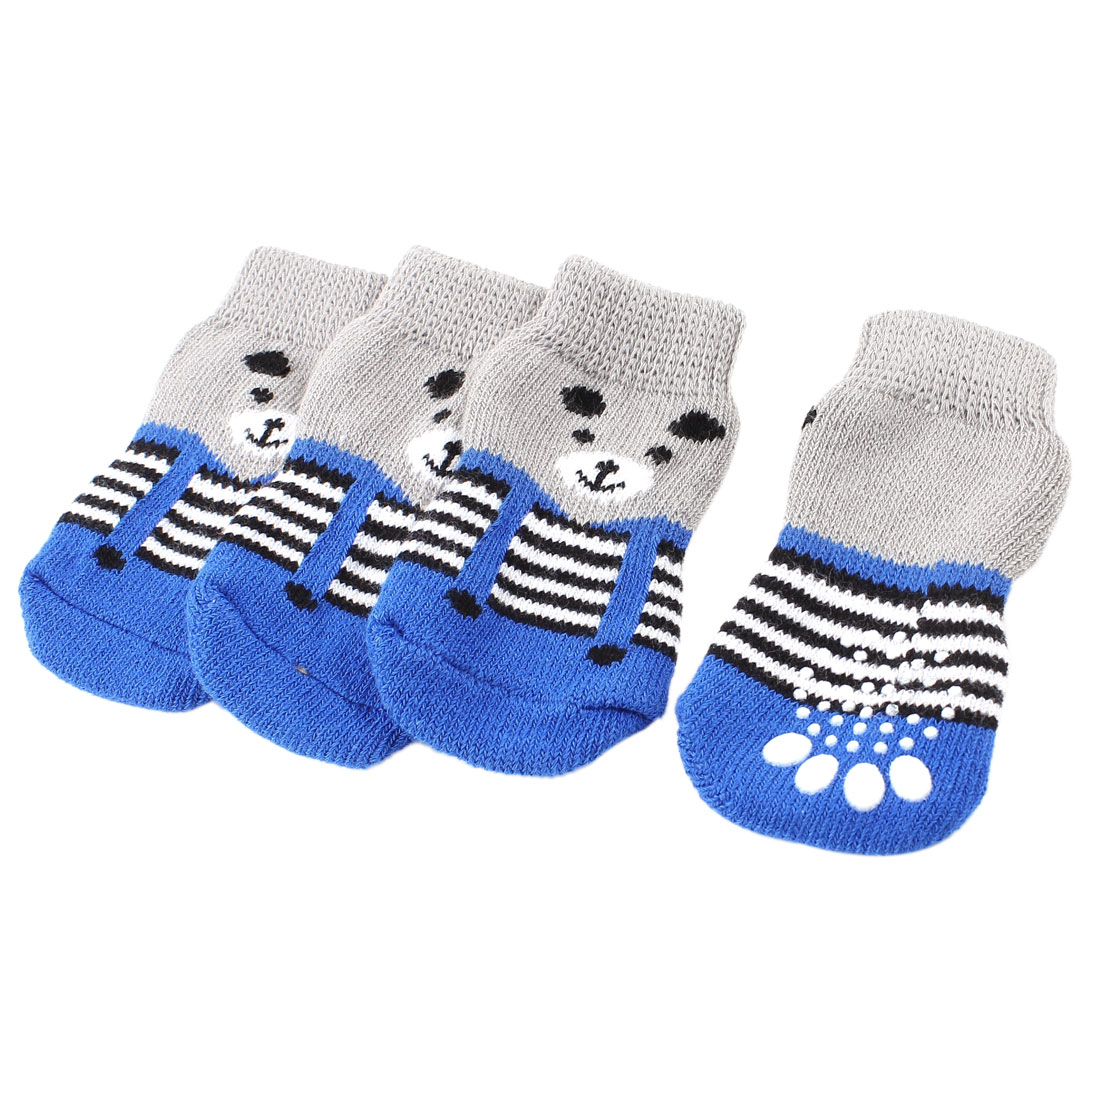 2 Pairs Gray Blue Nonslip Paw Printed Acrylic Doggie Puppy Pet Socks Size S